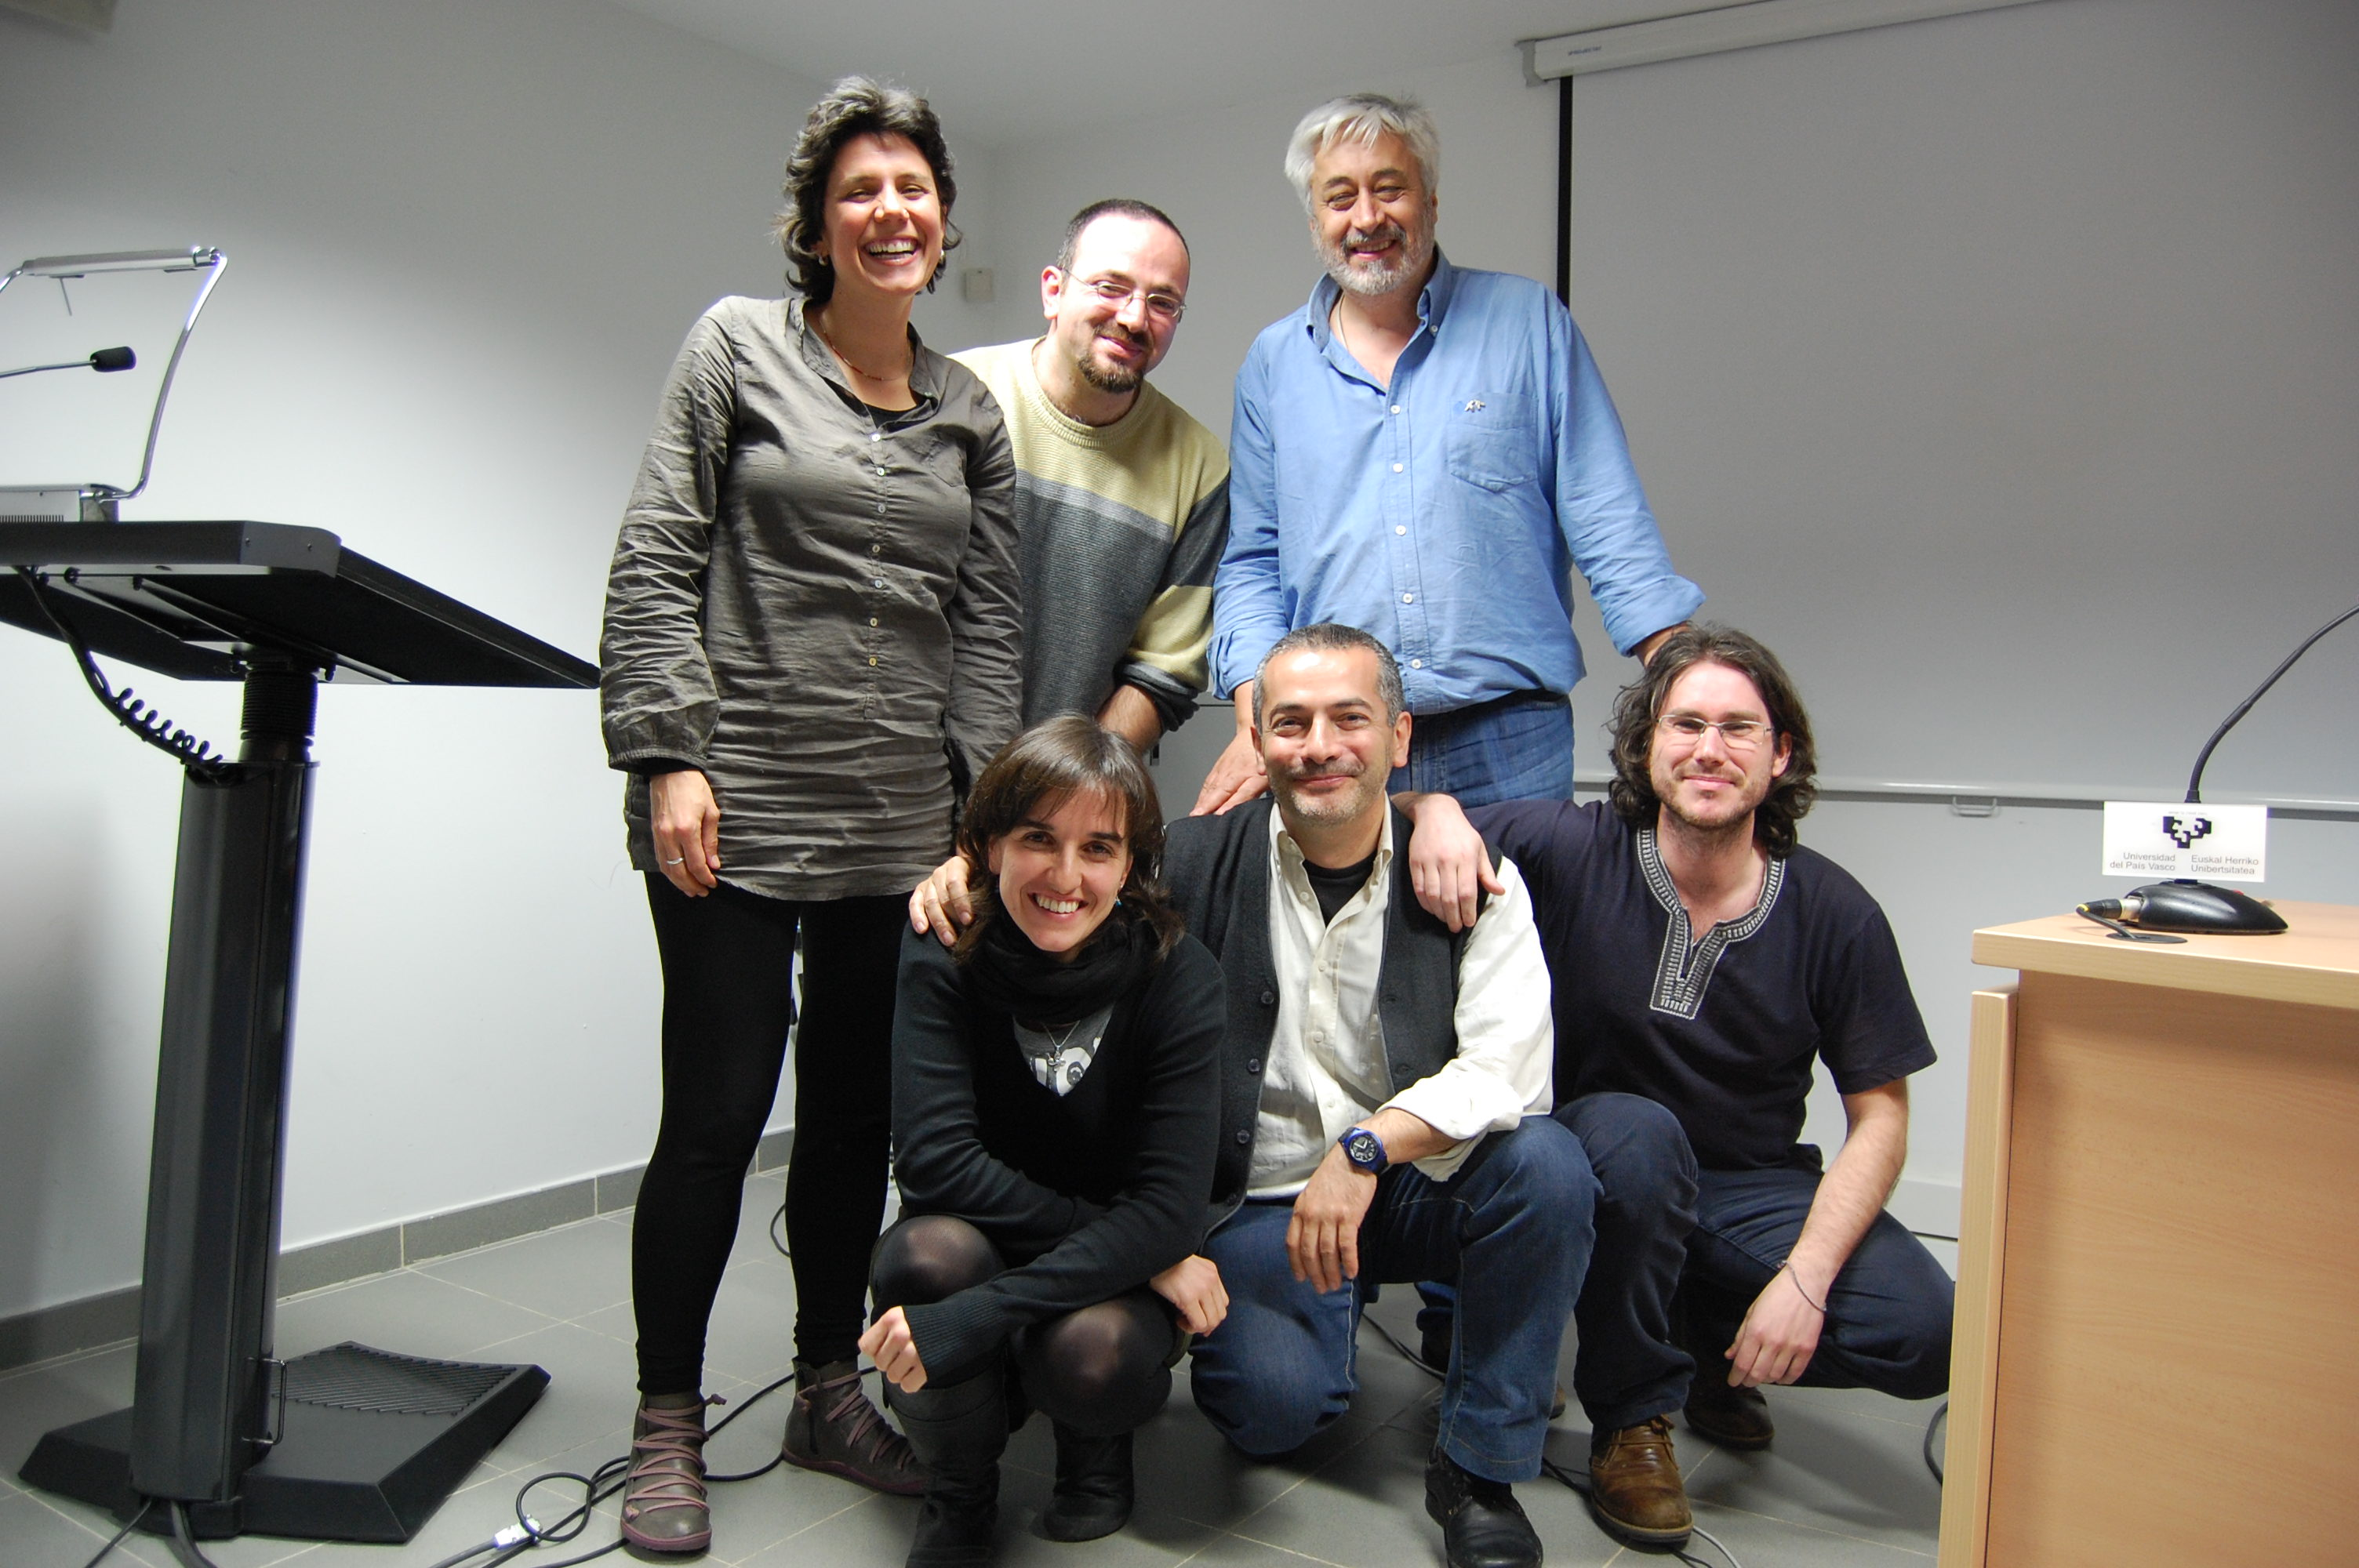 Seminaron Palestine at HEGOA, Institute of Development Studies and International Cooperation, at the University of the Basque Country in Bilbao